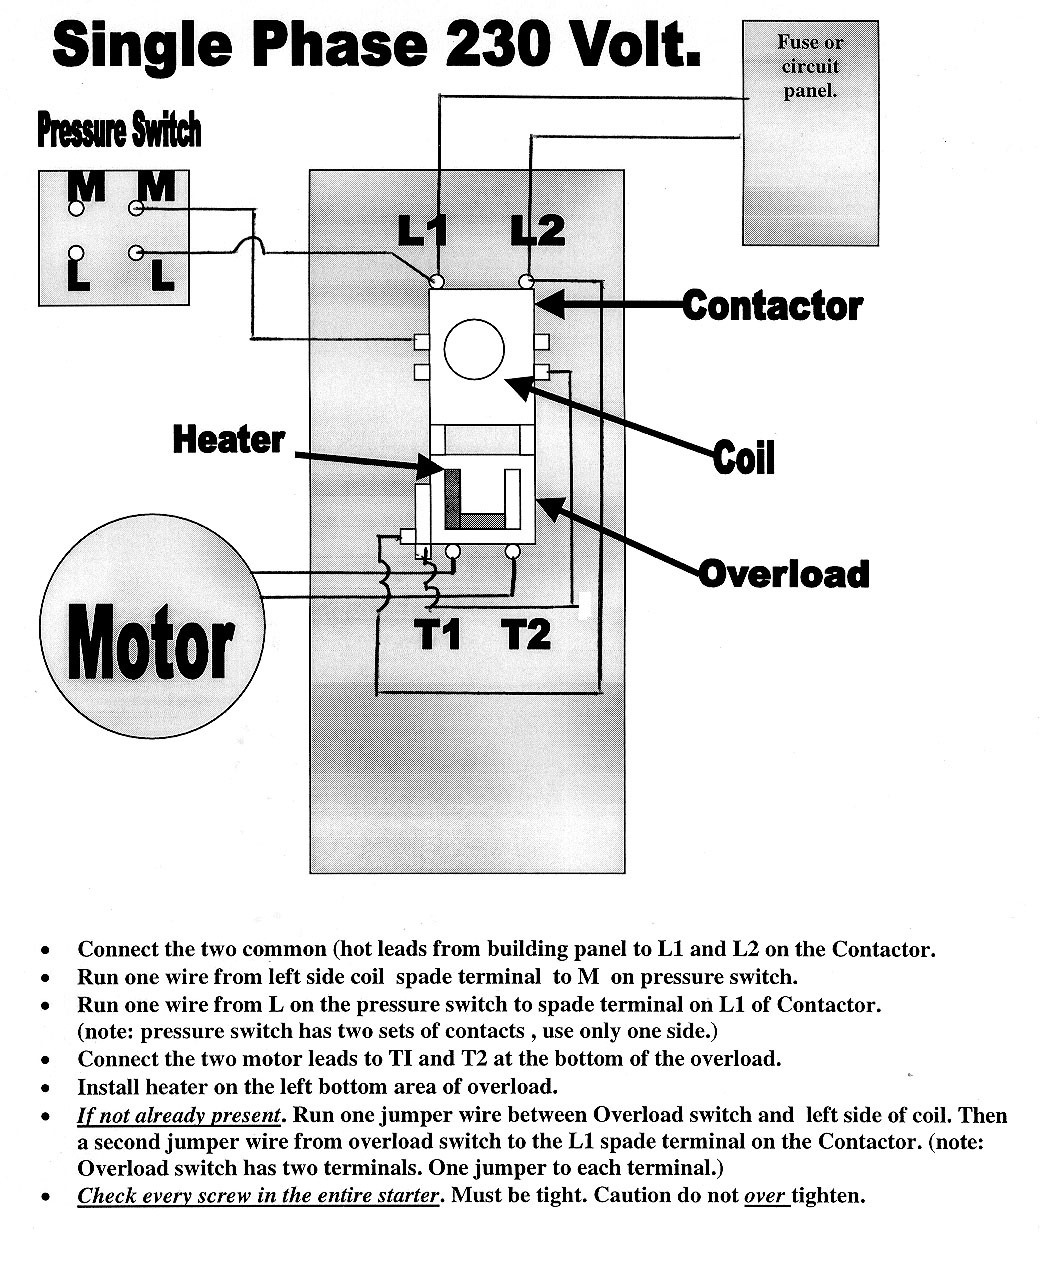 ge motor 5kc wiring diagram ge image wiring diagram ge single phase motor wiring diagram ge auto wiring diagram on ge motor 5kc wiring diagram